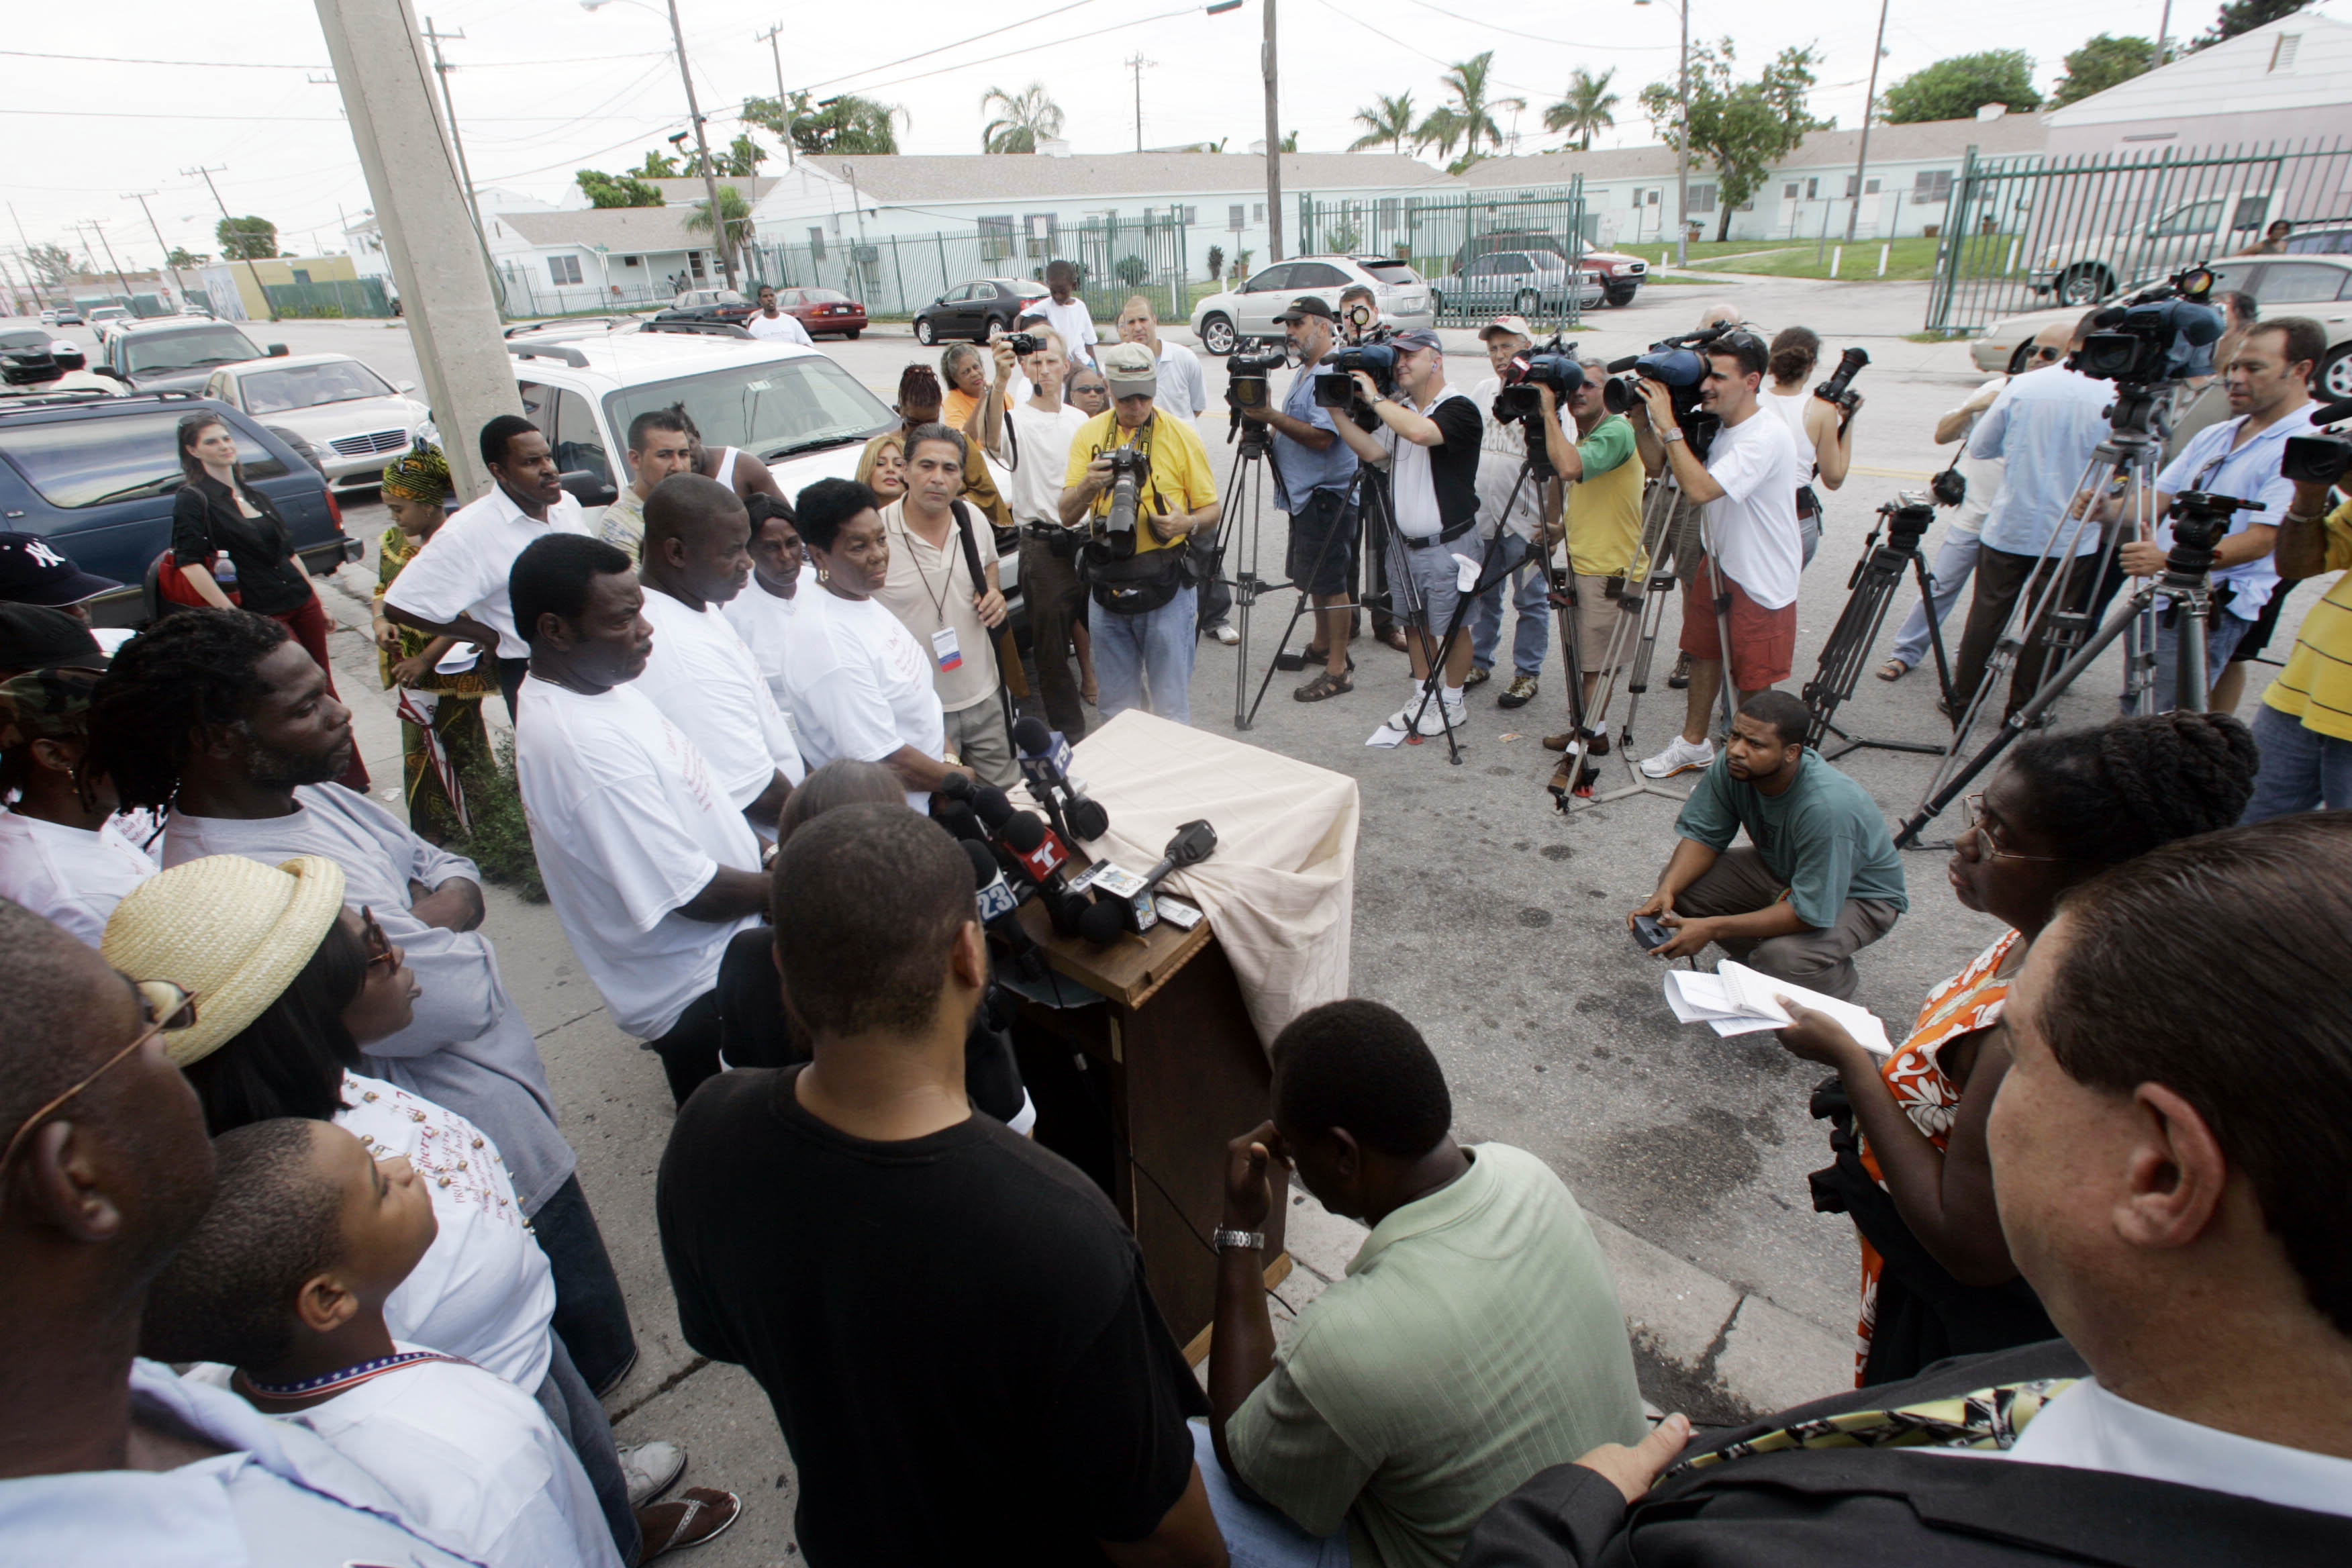 Family members of some of the seven men charged with plotting to destroy the Sears Tower in Chicago and other buildings, center left in white t-shirts,  look on during a news conference where activists spoke, Thursday, June 29, 2006 at the Liberty City neighborhood warehouse in Miami where the FBI arrested most of the men.  (AP Photo/Wilfredo Lee)